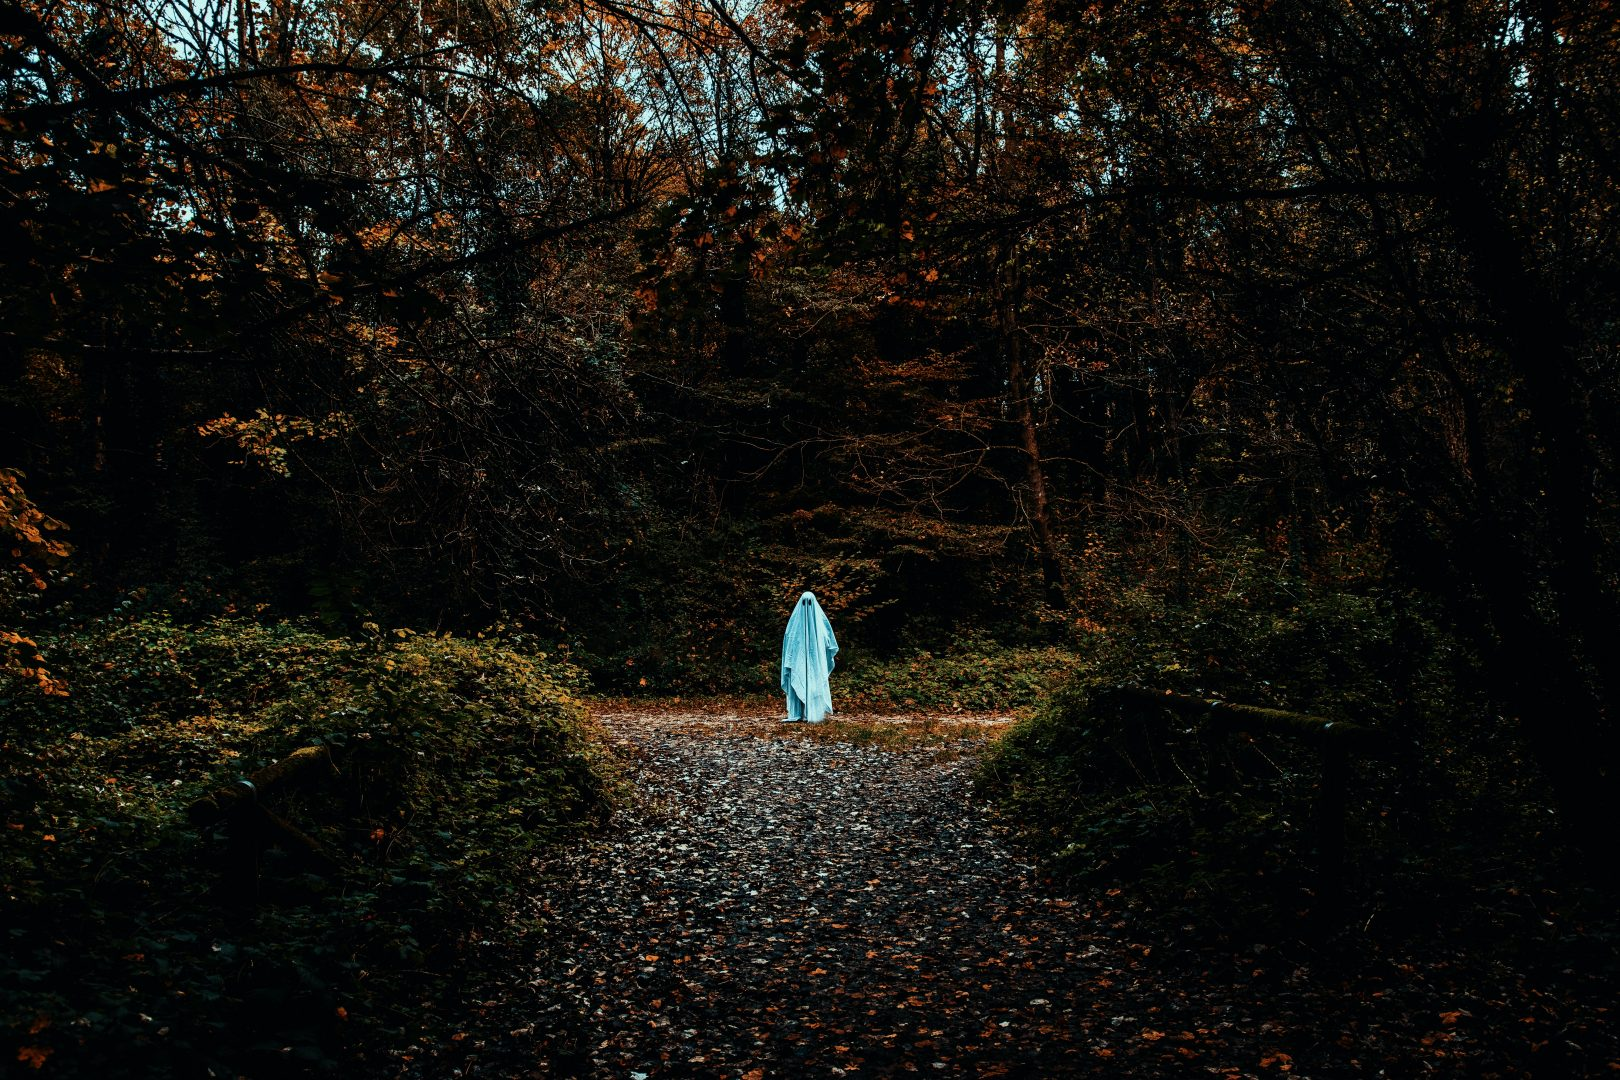 person in white robe walking on pathway between trees during daytime